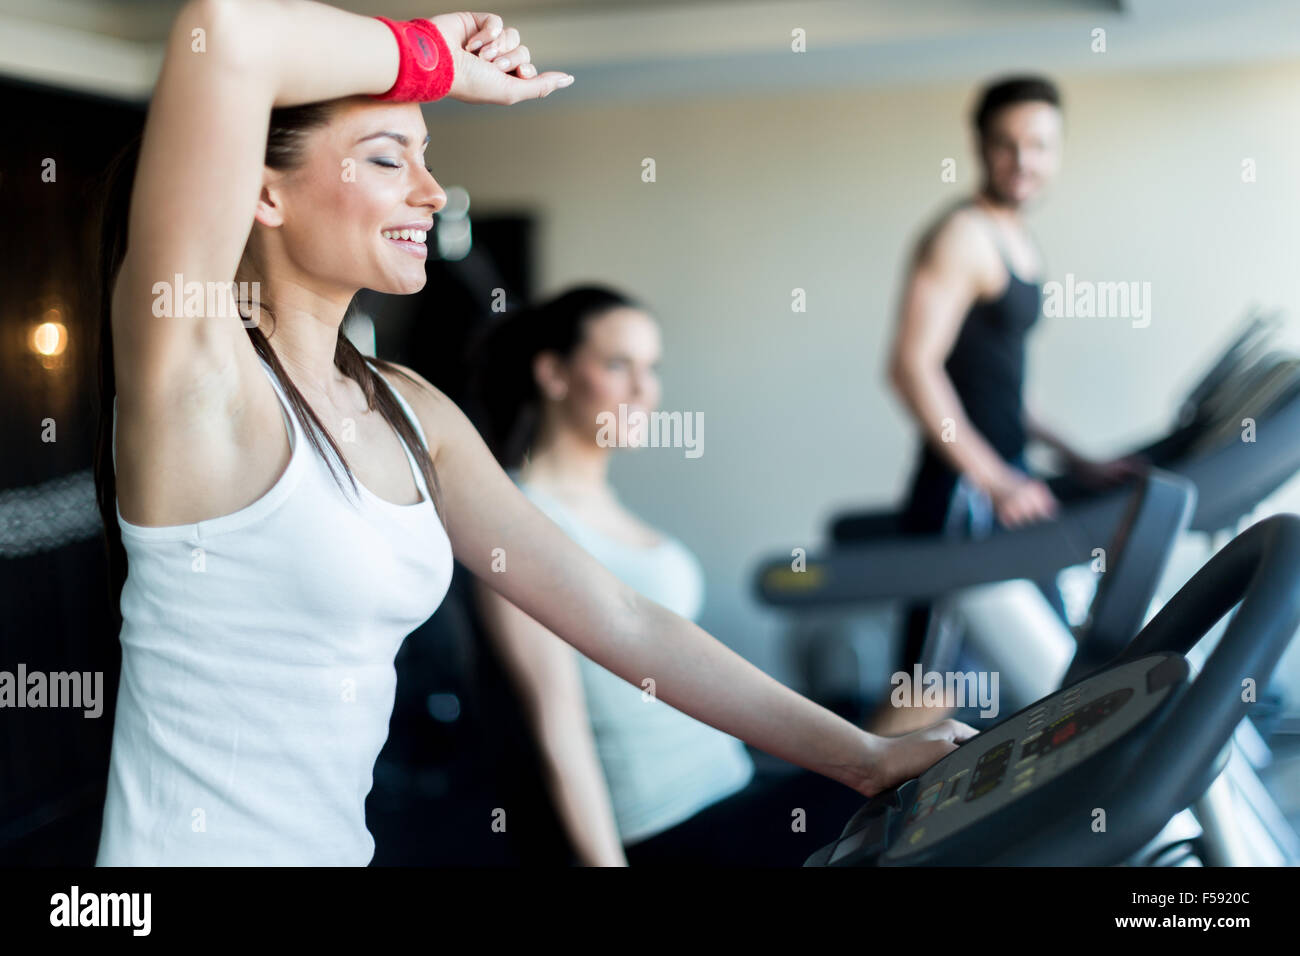 Young, beautiful woman training by riding a bicycle in a gym and sweating - Stock Image